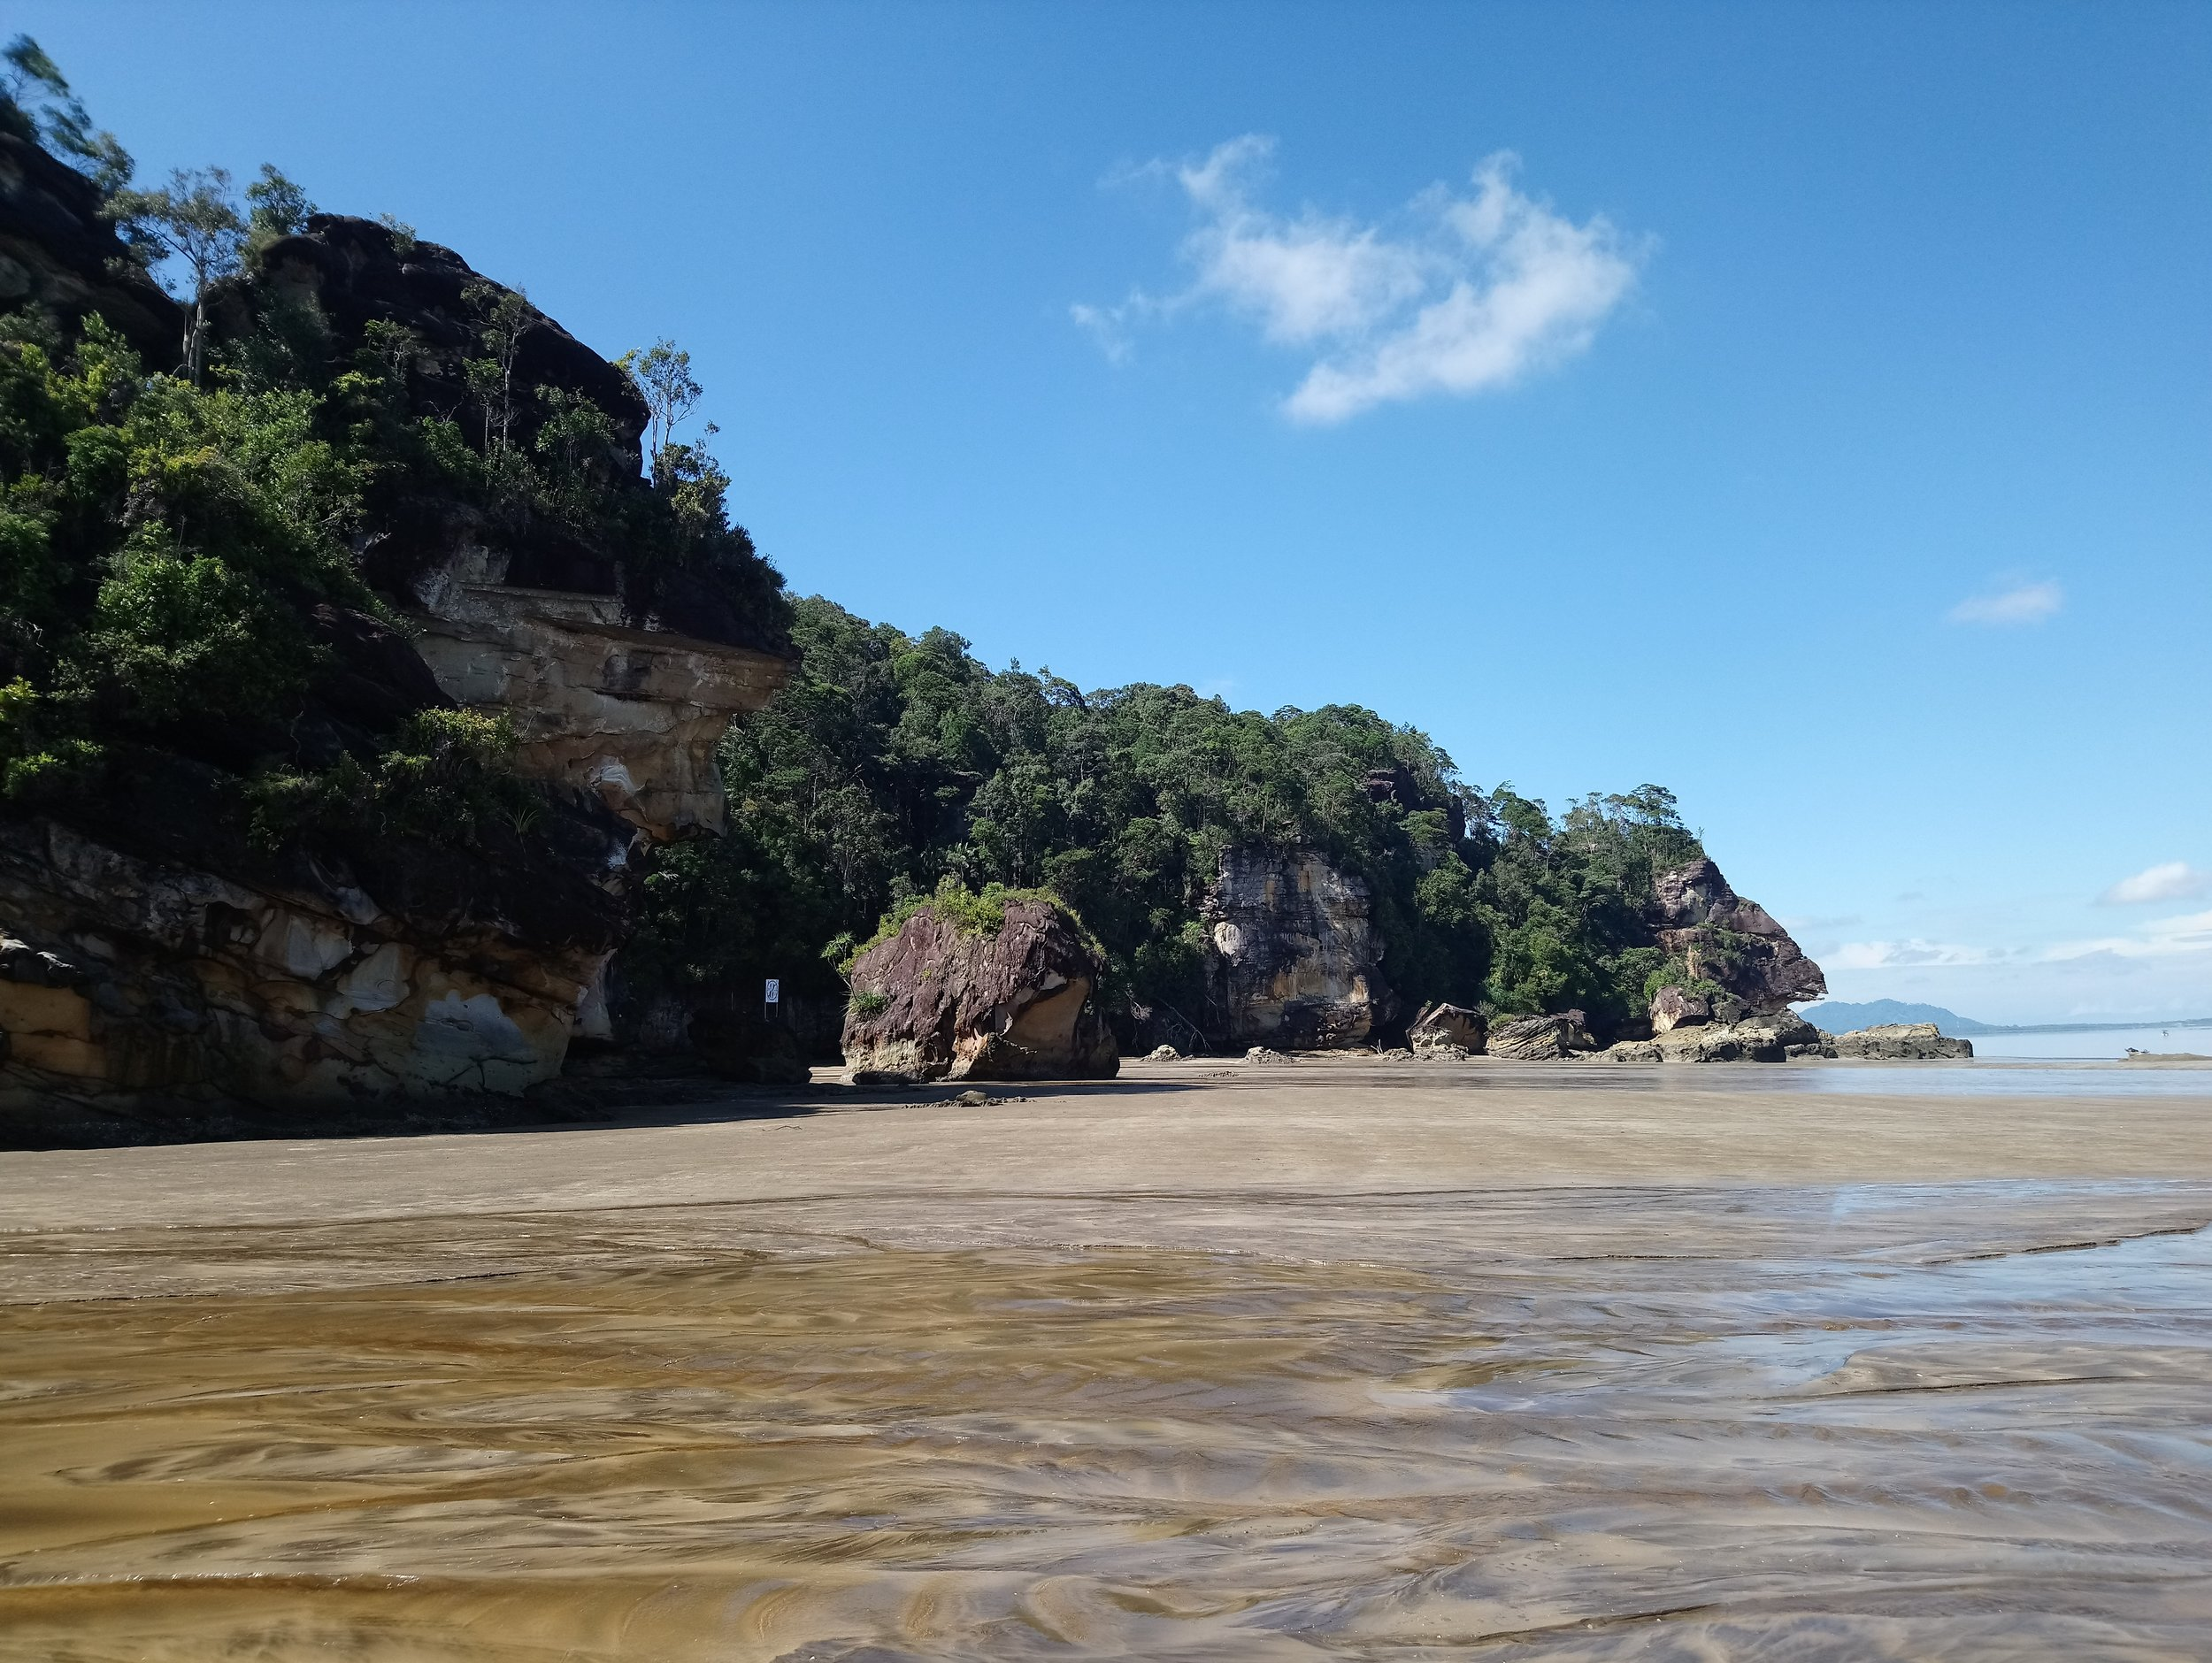 Seeing nature while it last, at Bako National Park.